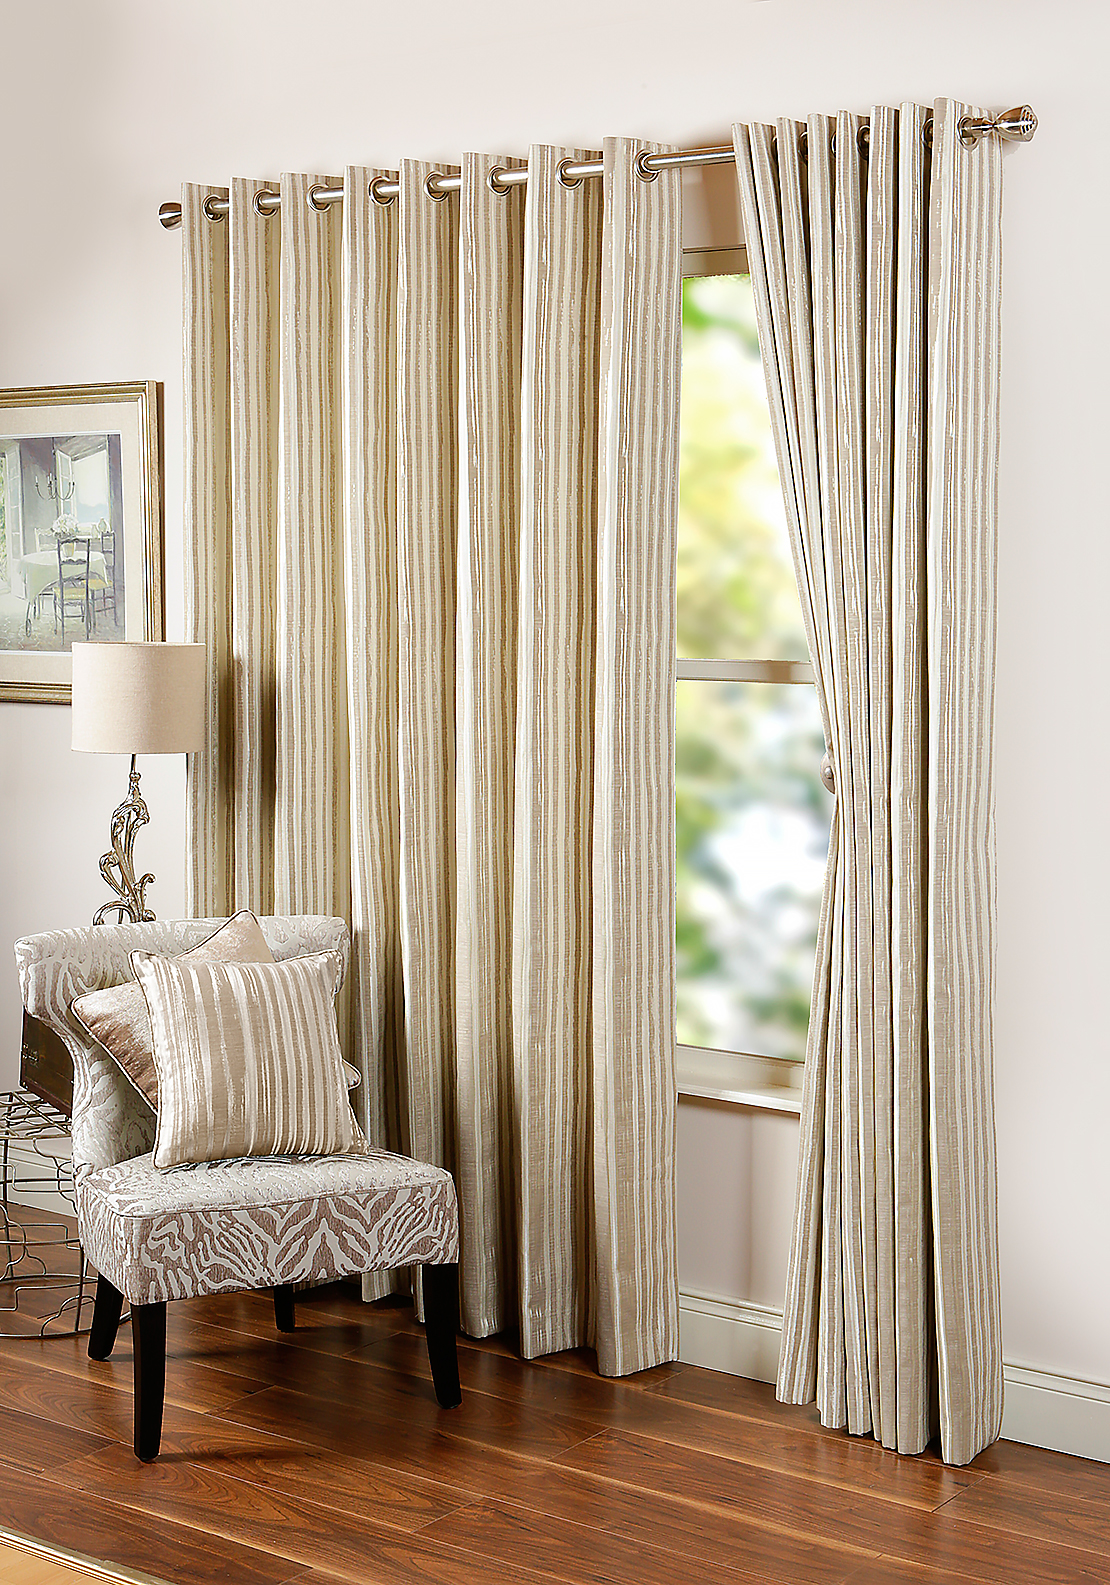 "Scatterbox Dawn Abstract Striped Fully Lined Eyelet Curtains 110 x 90"", Natural"